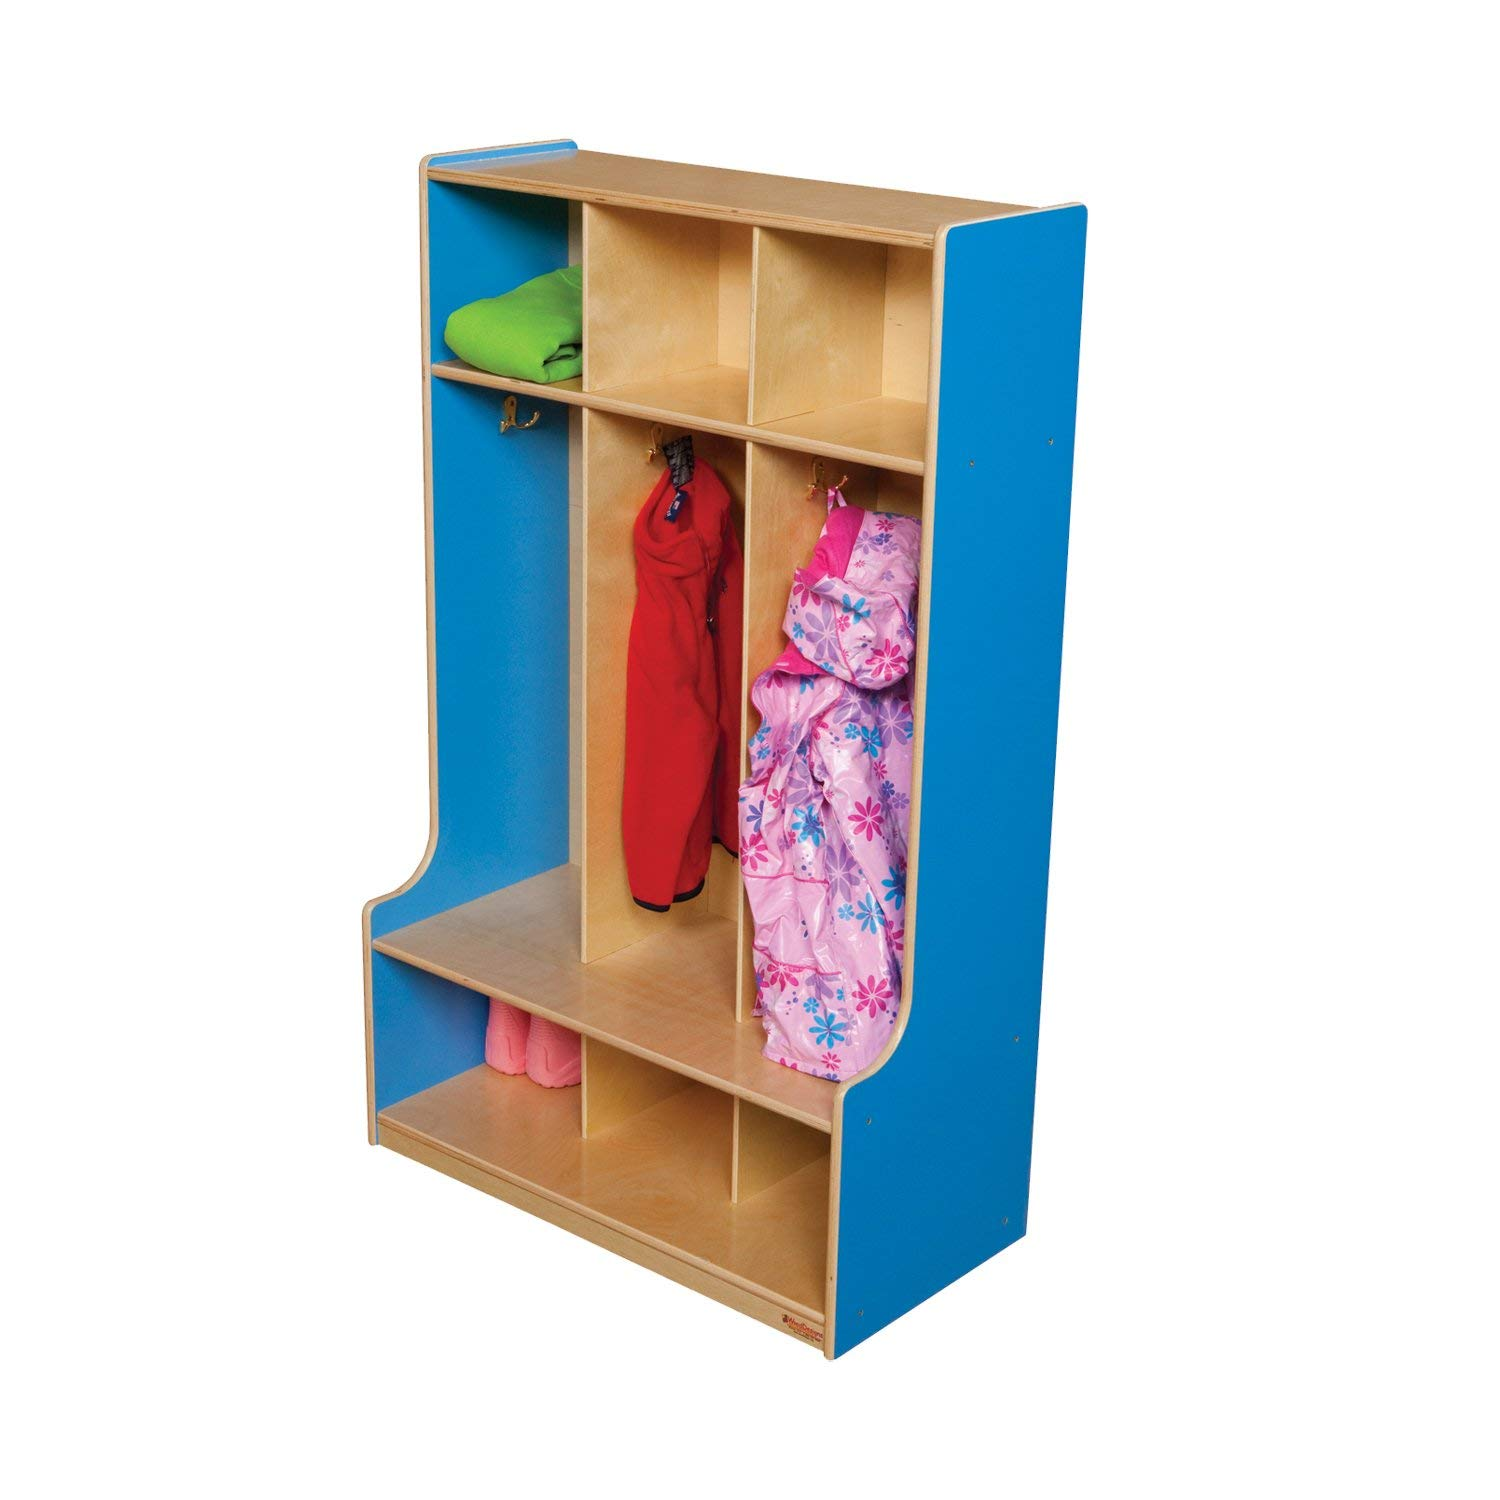 "Wood Designs 51003B Blueberry 3 Section Seat Locker, 49"" Height, 18"" Width, 51.5"" Length"